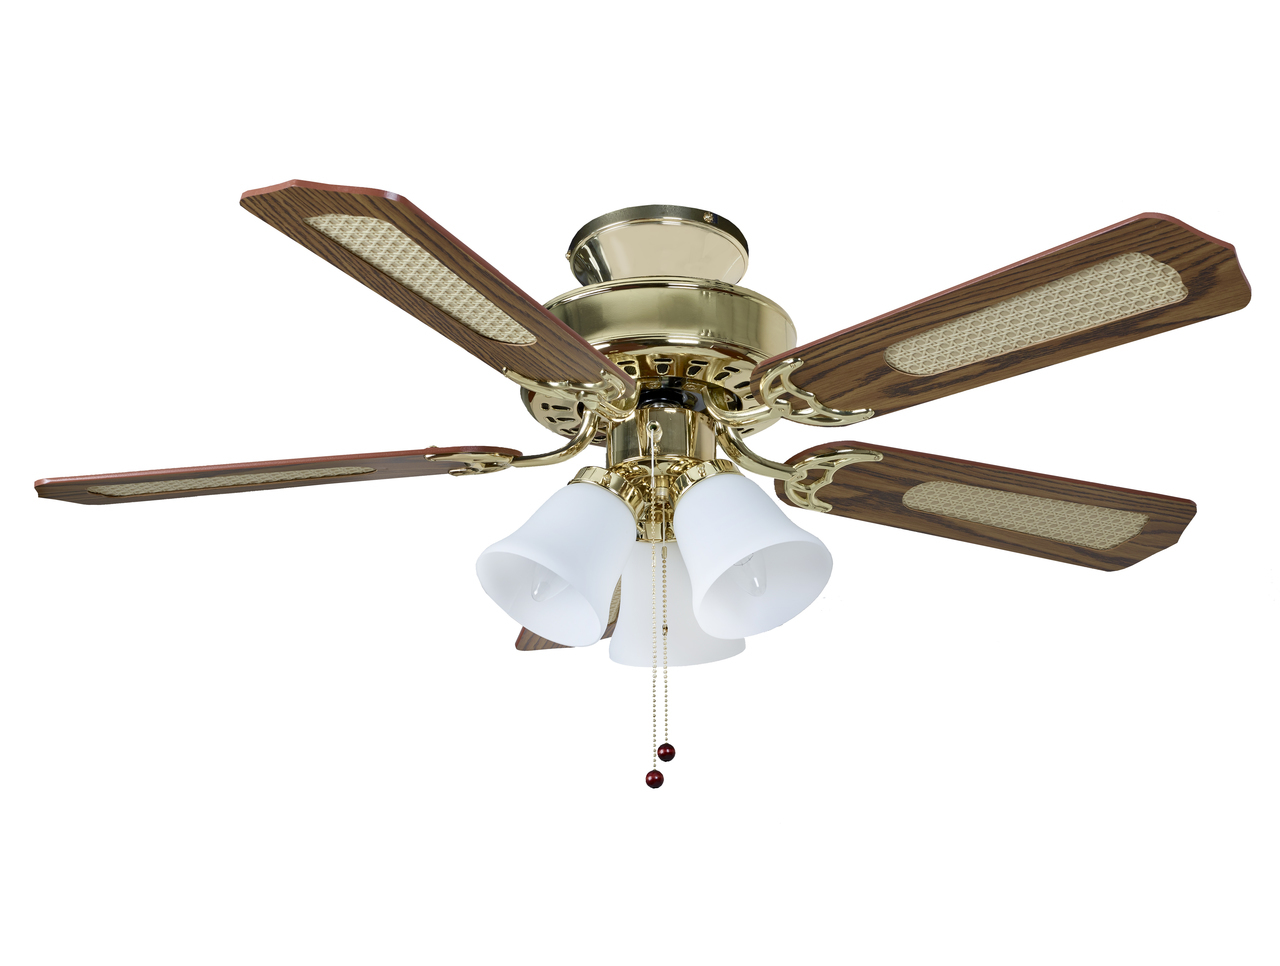 Fantasia belaire 42in ceiling fan brass light fantasia - Pictures of ceiling fans ...